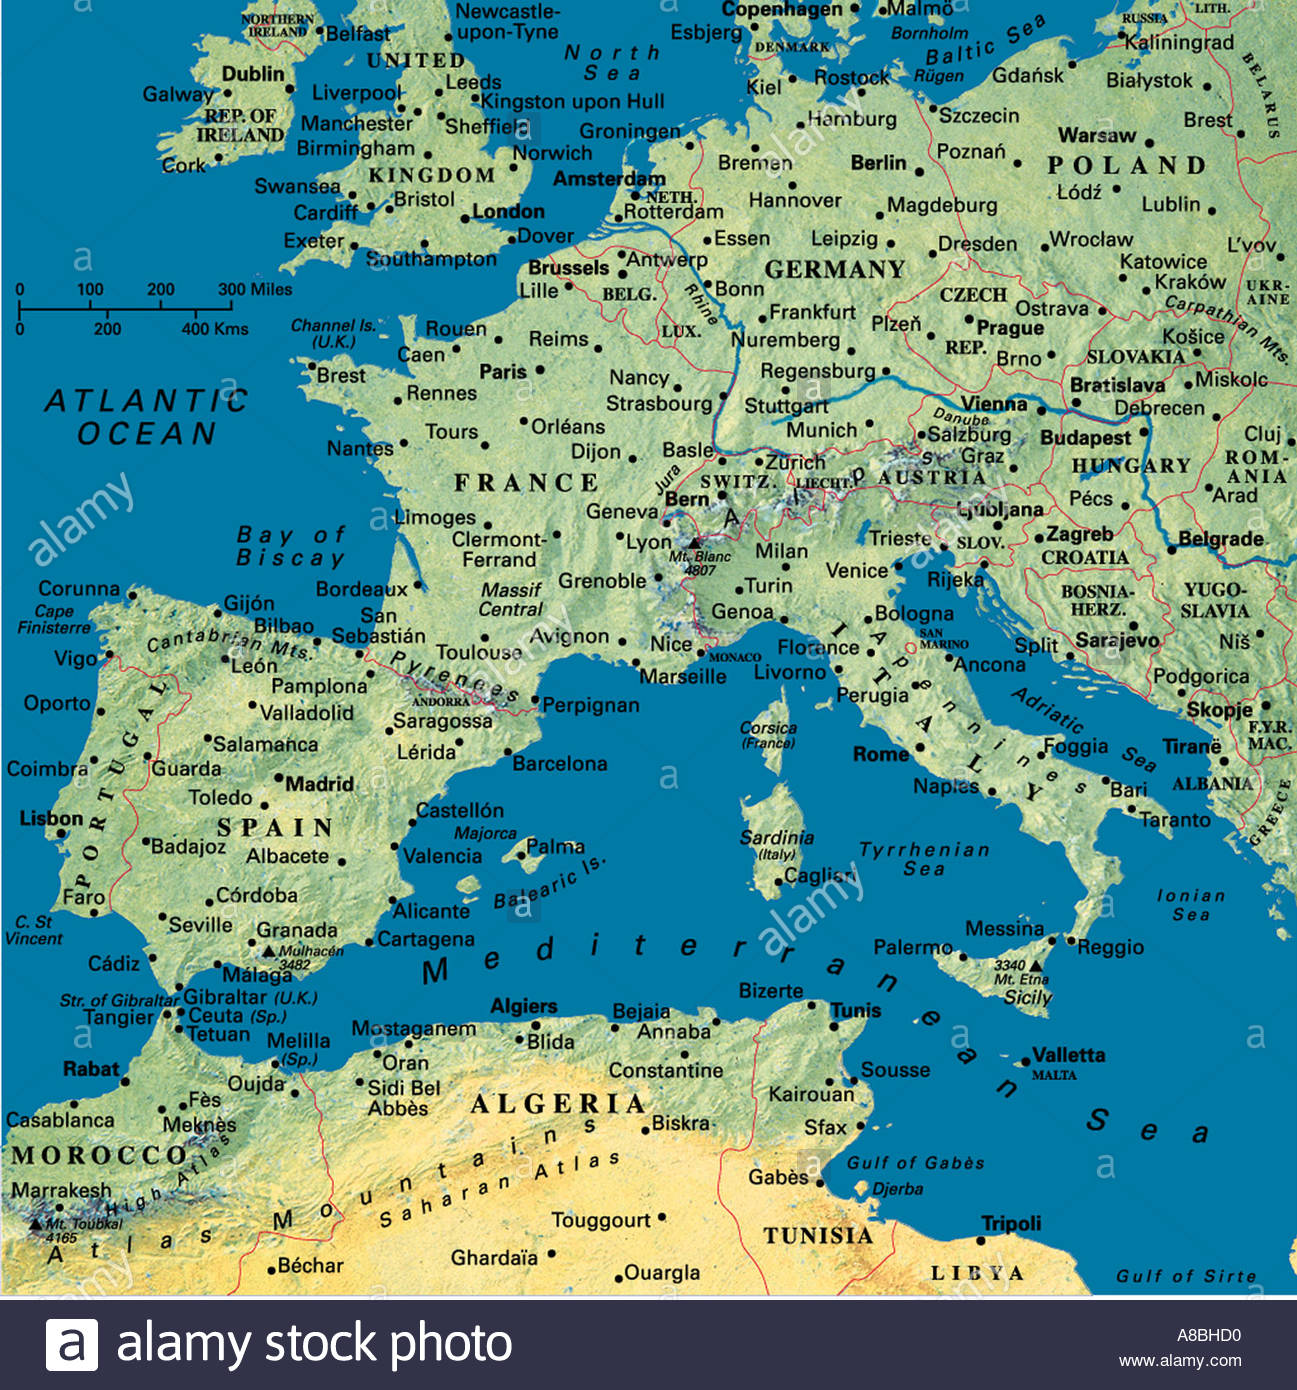 Map Of France Germany.Map Maps Europe Algeria Tunesia North Africa Spain Portugal France